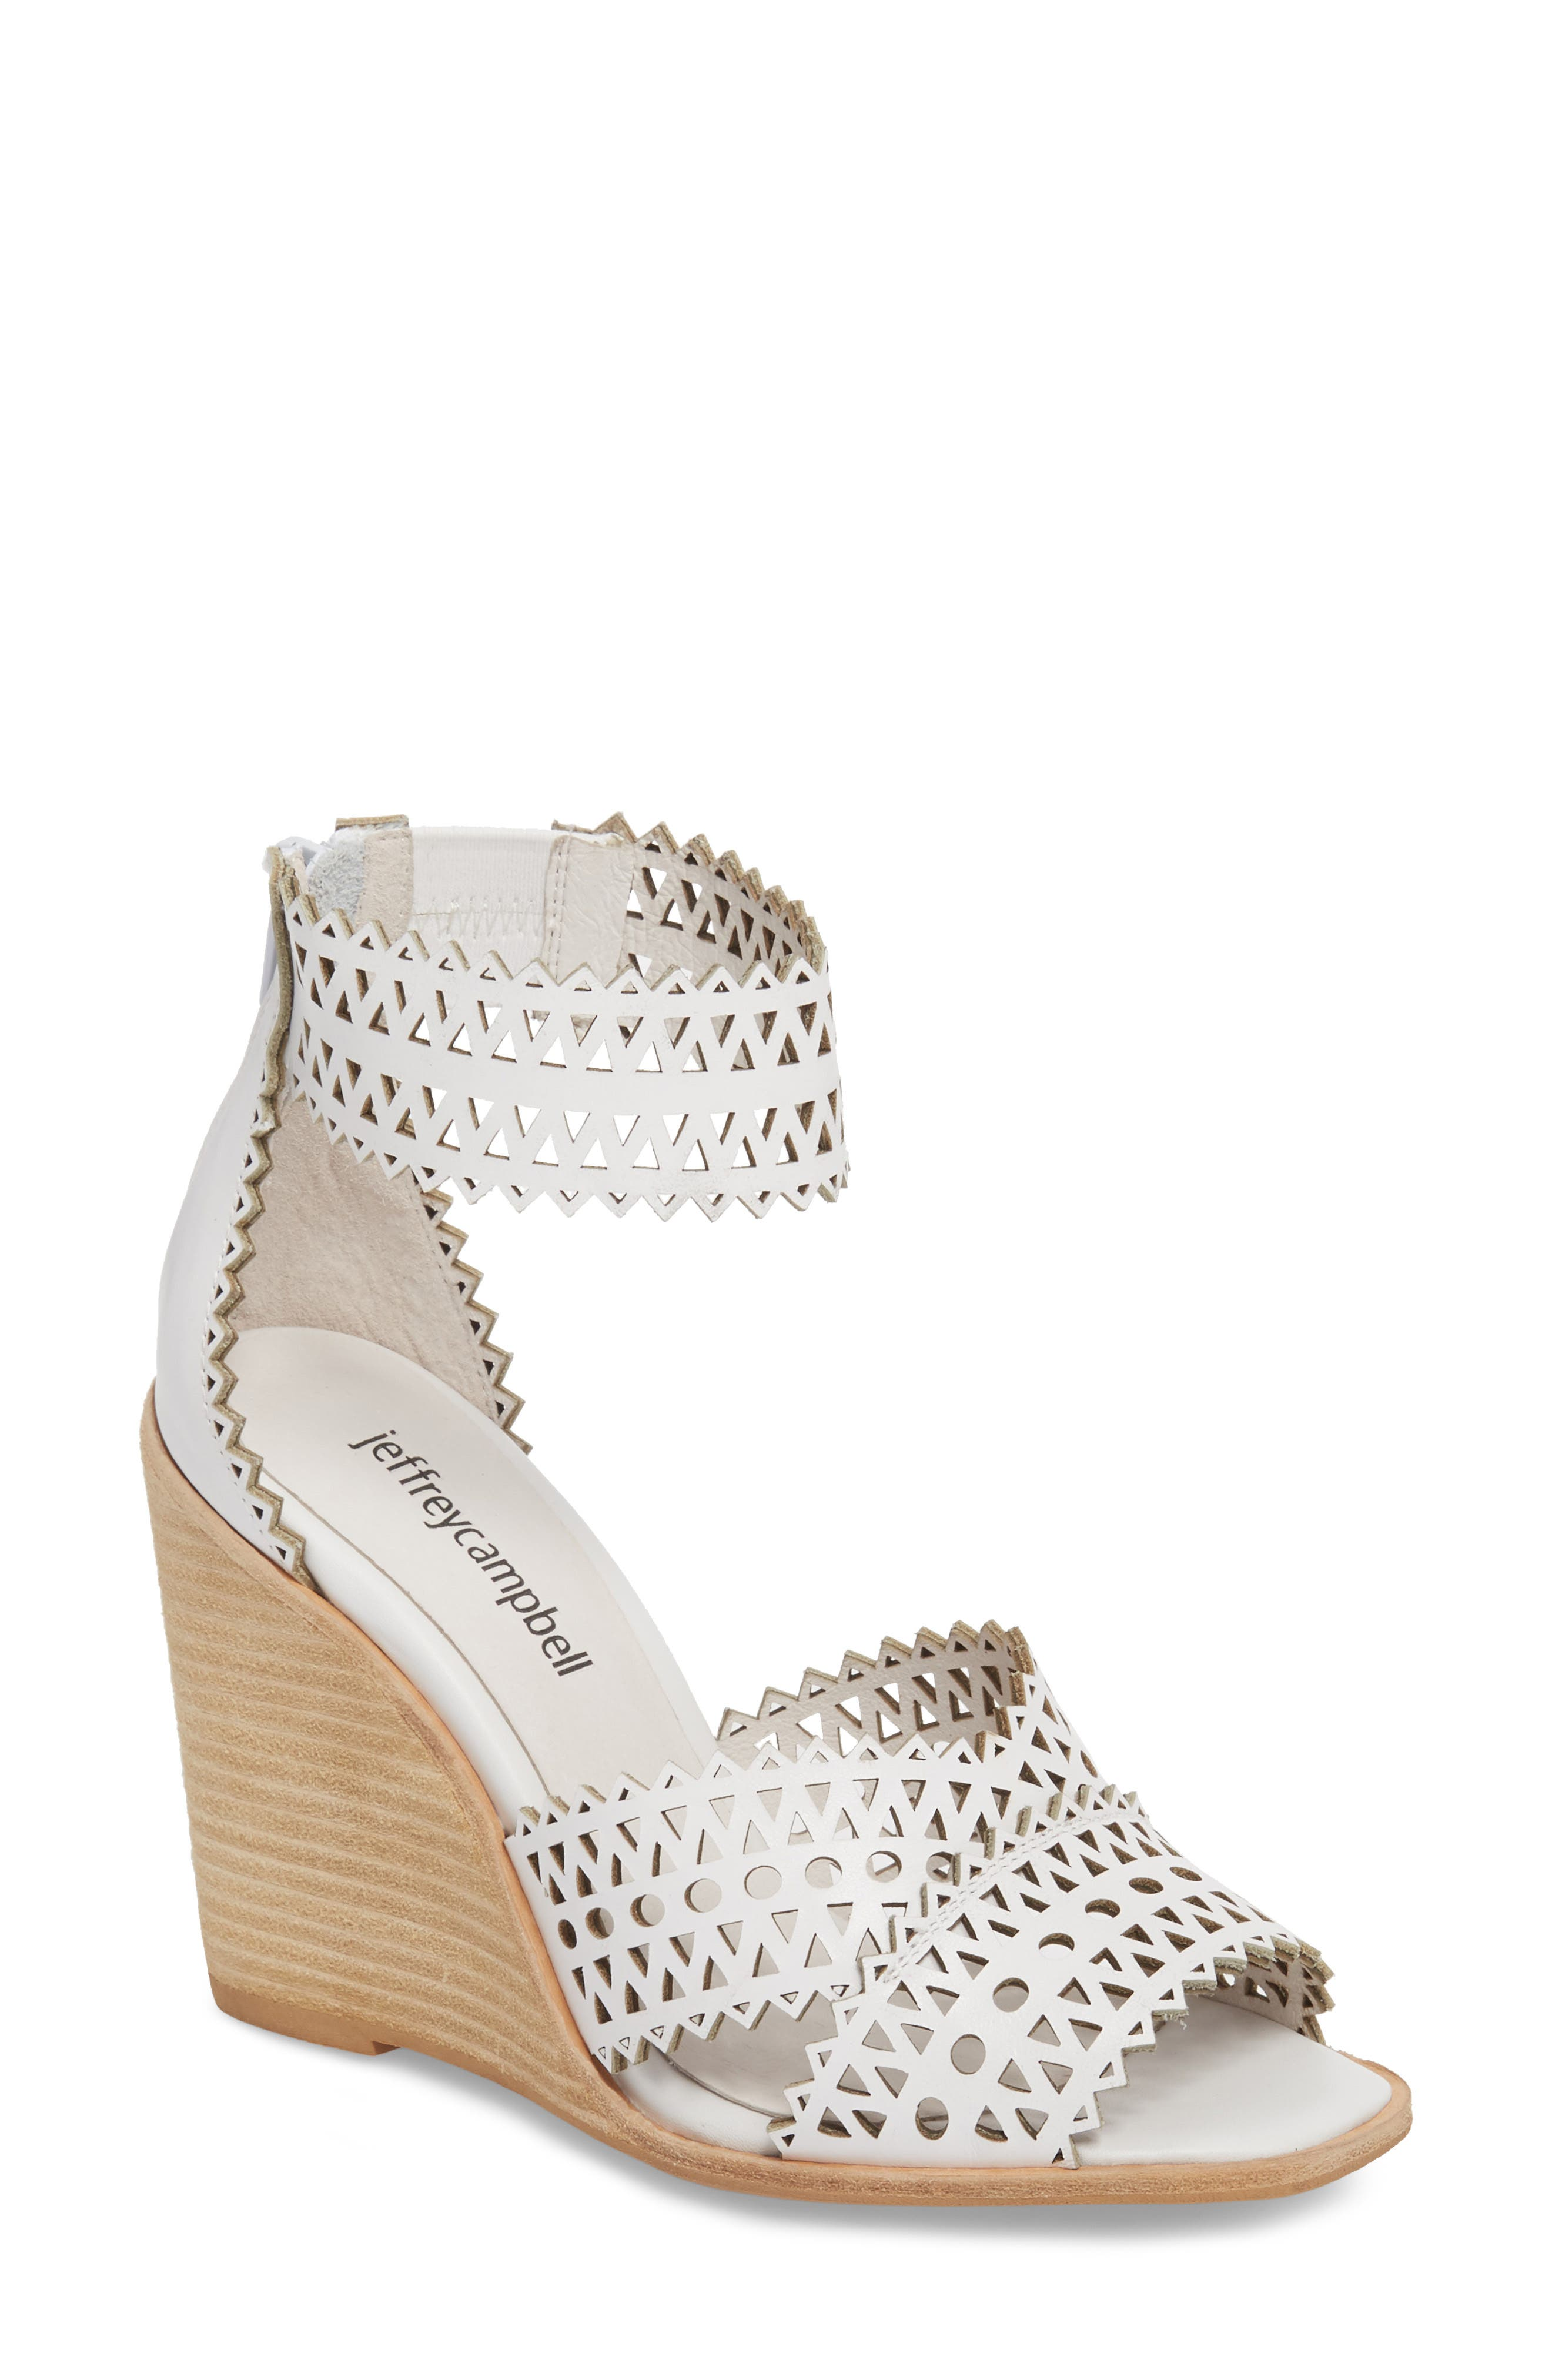 Besante Perforated Wedge Sandal,                         Main,                         color, White